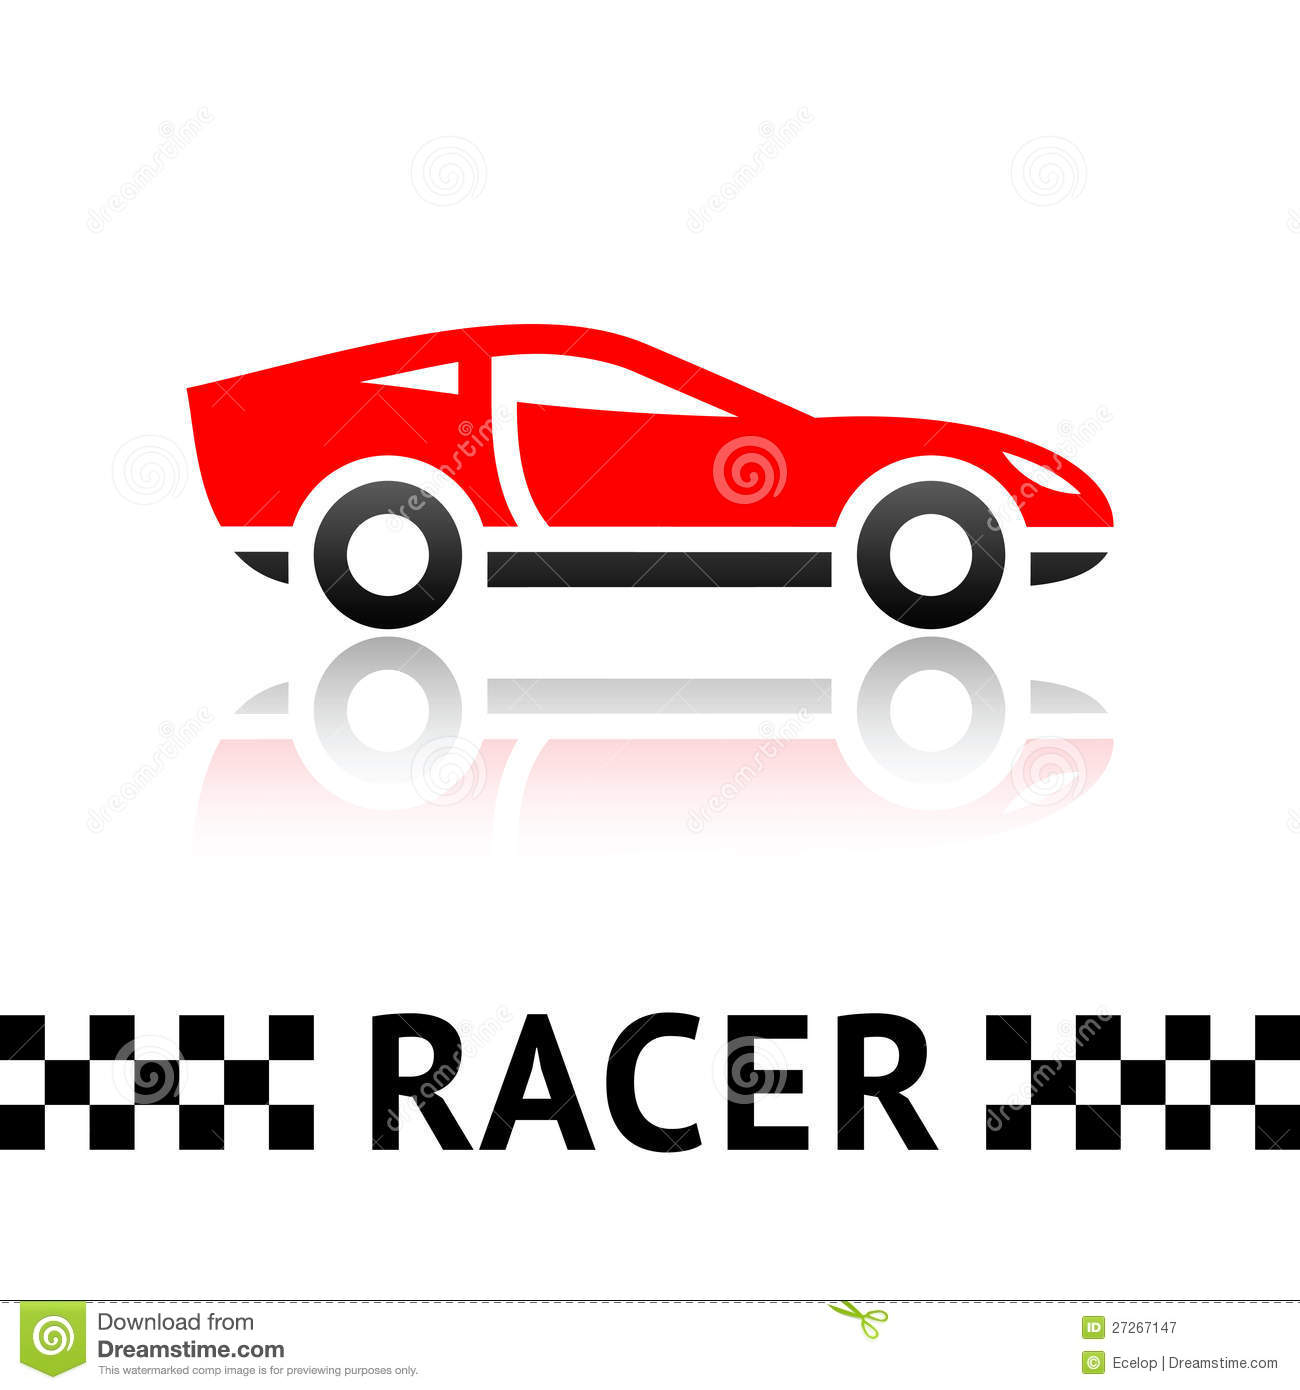 Race Car Symbol Royalty Free Stock Photography - Image: 27267147